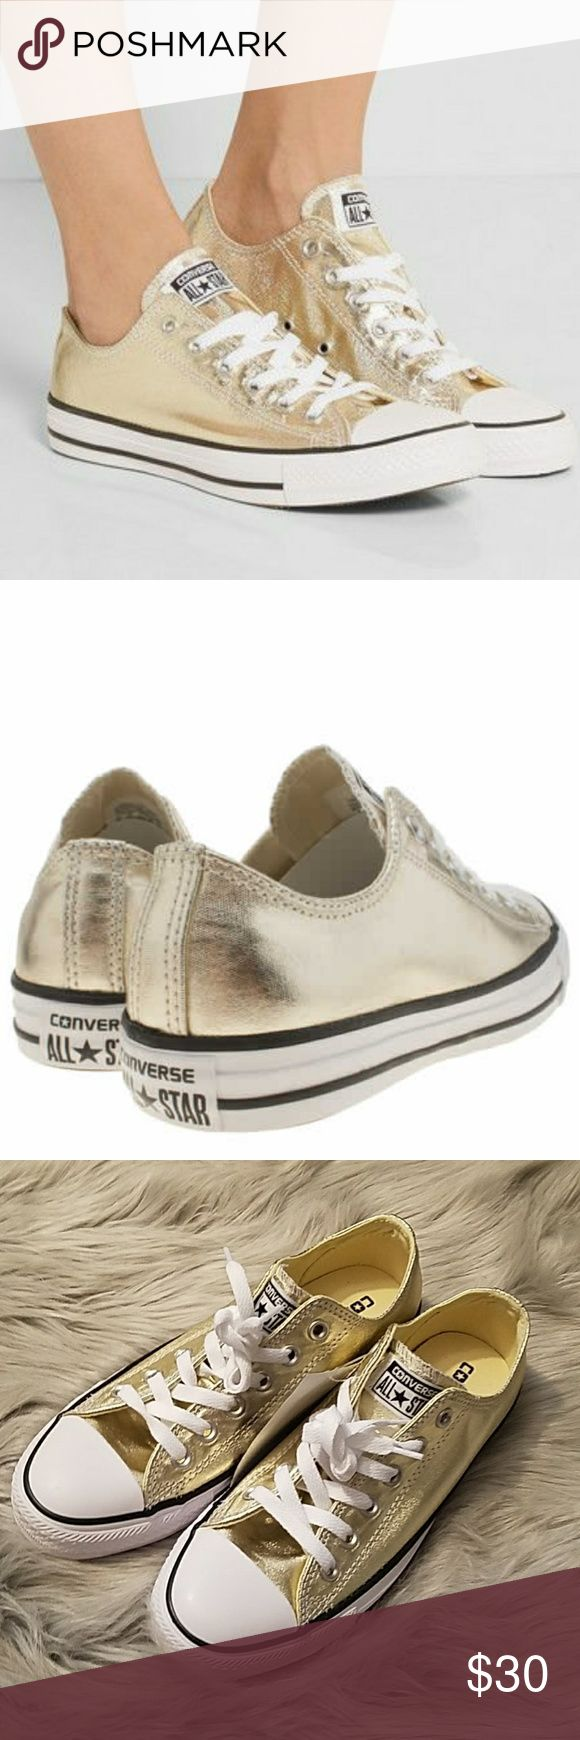 Converse Chuck Taylor All-Star Gold Sneakers New without box. Unisex style. Women's size 8, men's size 6. Converse Shoes